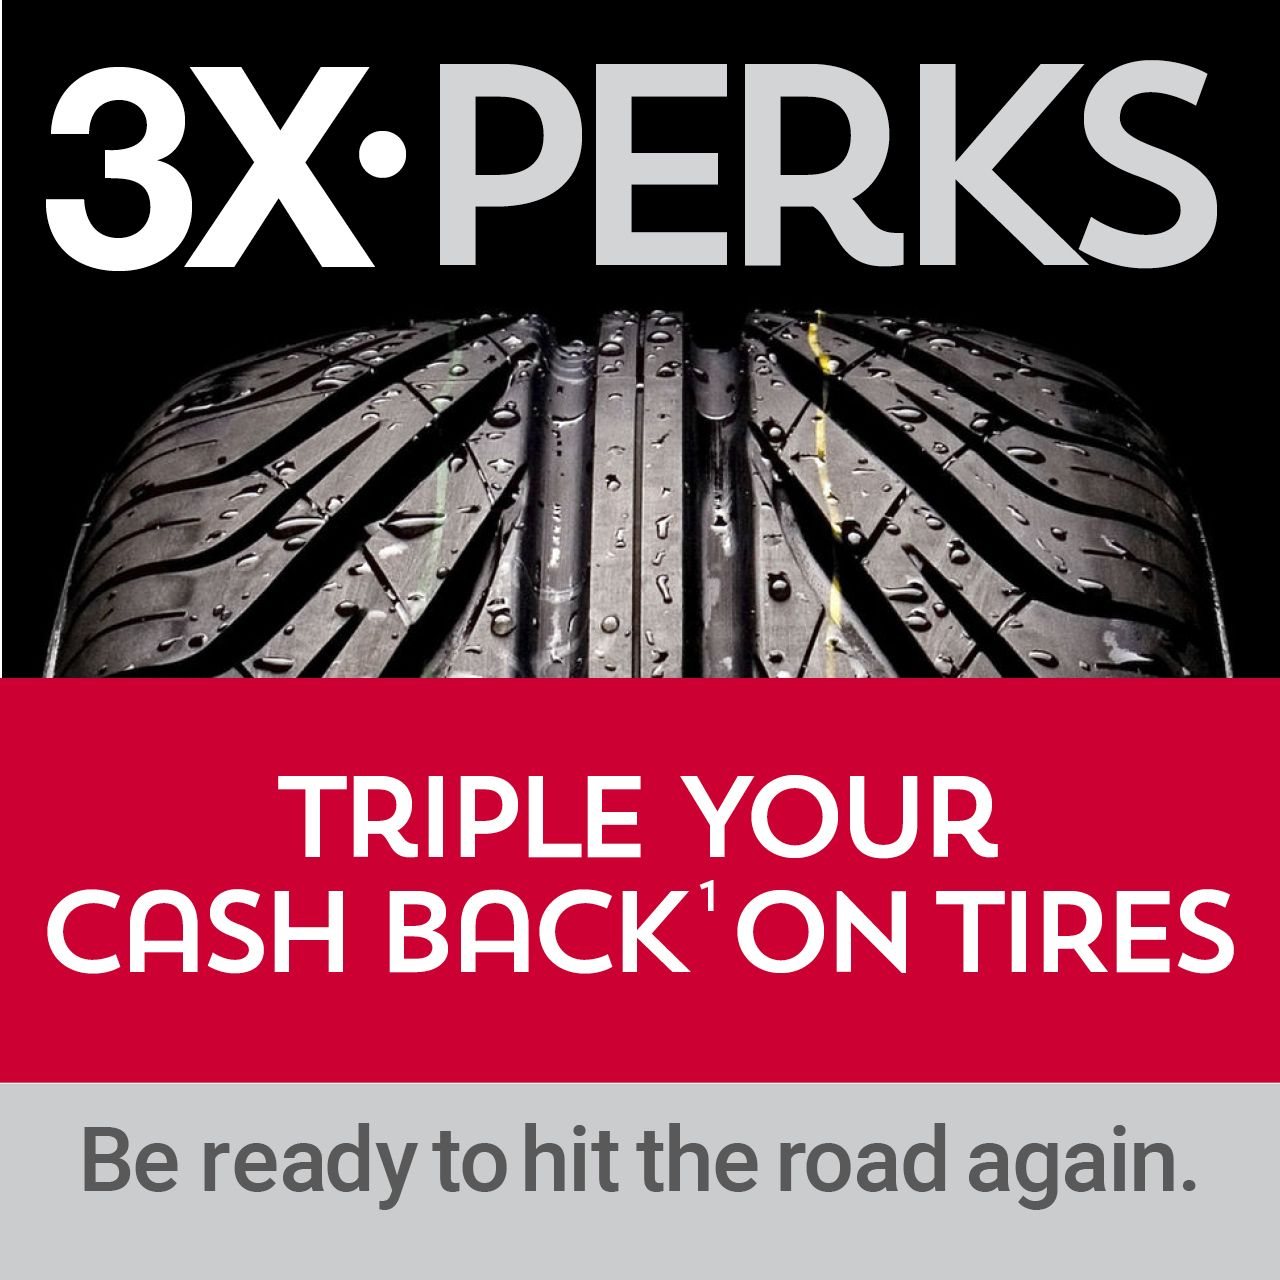 Triple Your Cash Back on Tires